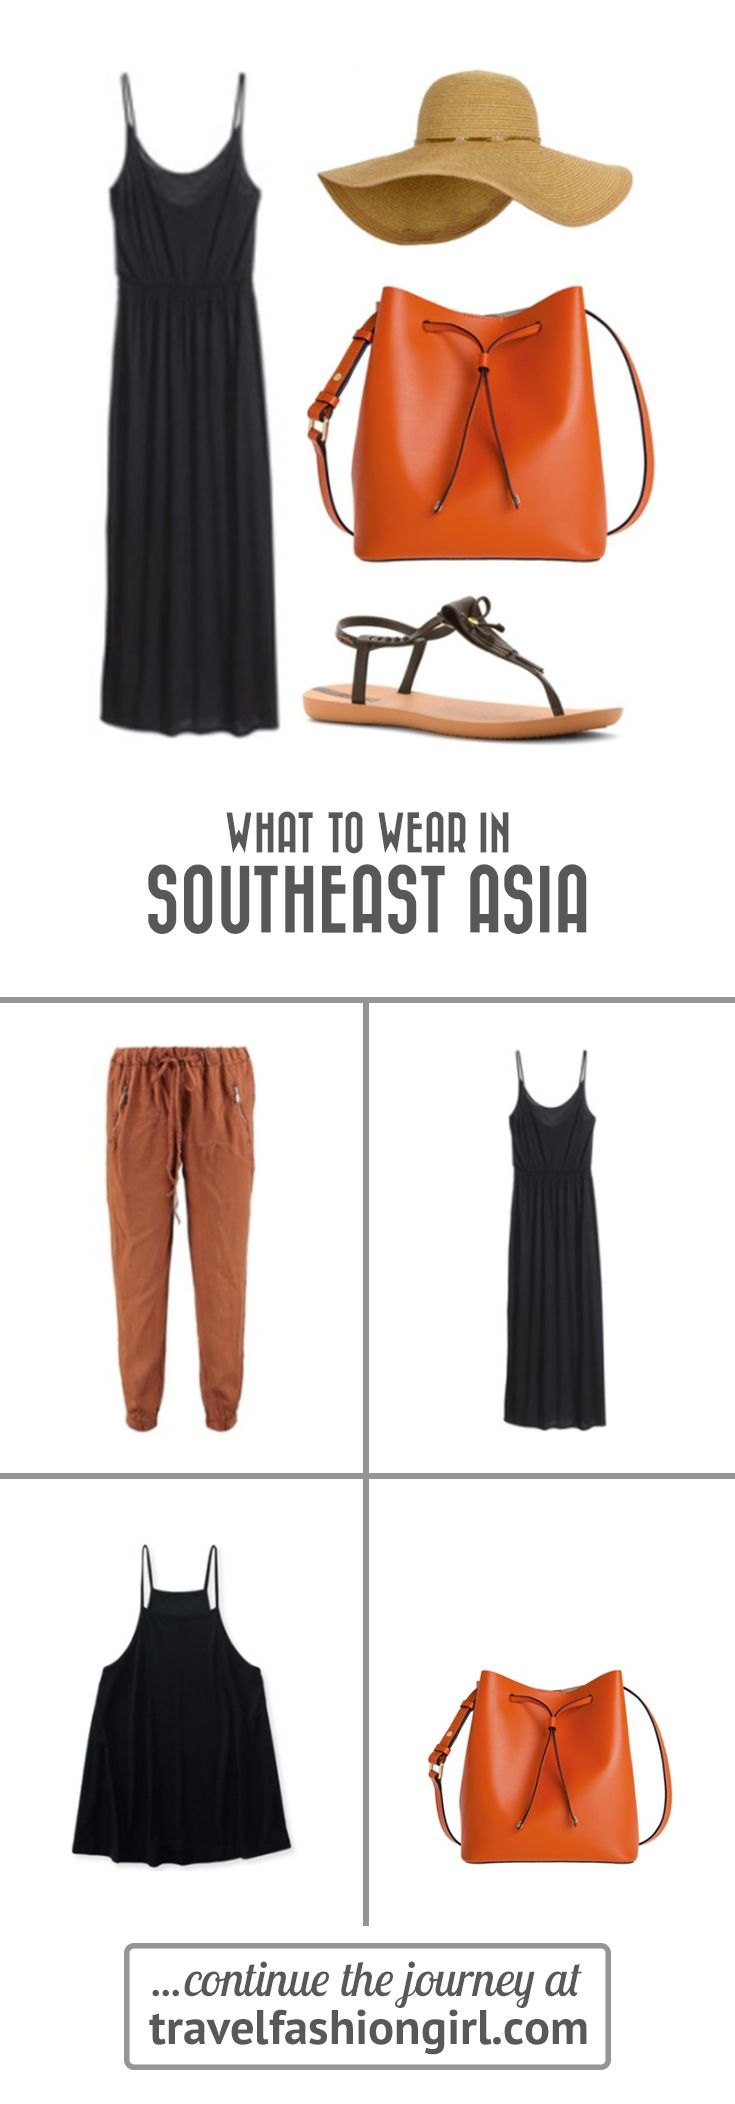 Wondering what to wear in Southeast Asia? Travel Fashion Girl shows you what to pack and when to pack it. Find out our top SEA travel essentials! http://travelfashiongirl.com/backpacking-southeast-asia-the-ultimate-packing-list/ via @travlfashngirl #packing #list #travel